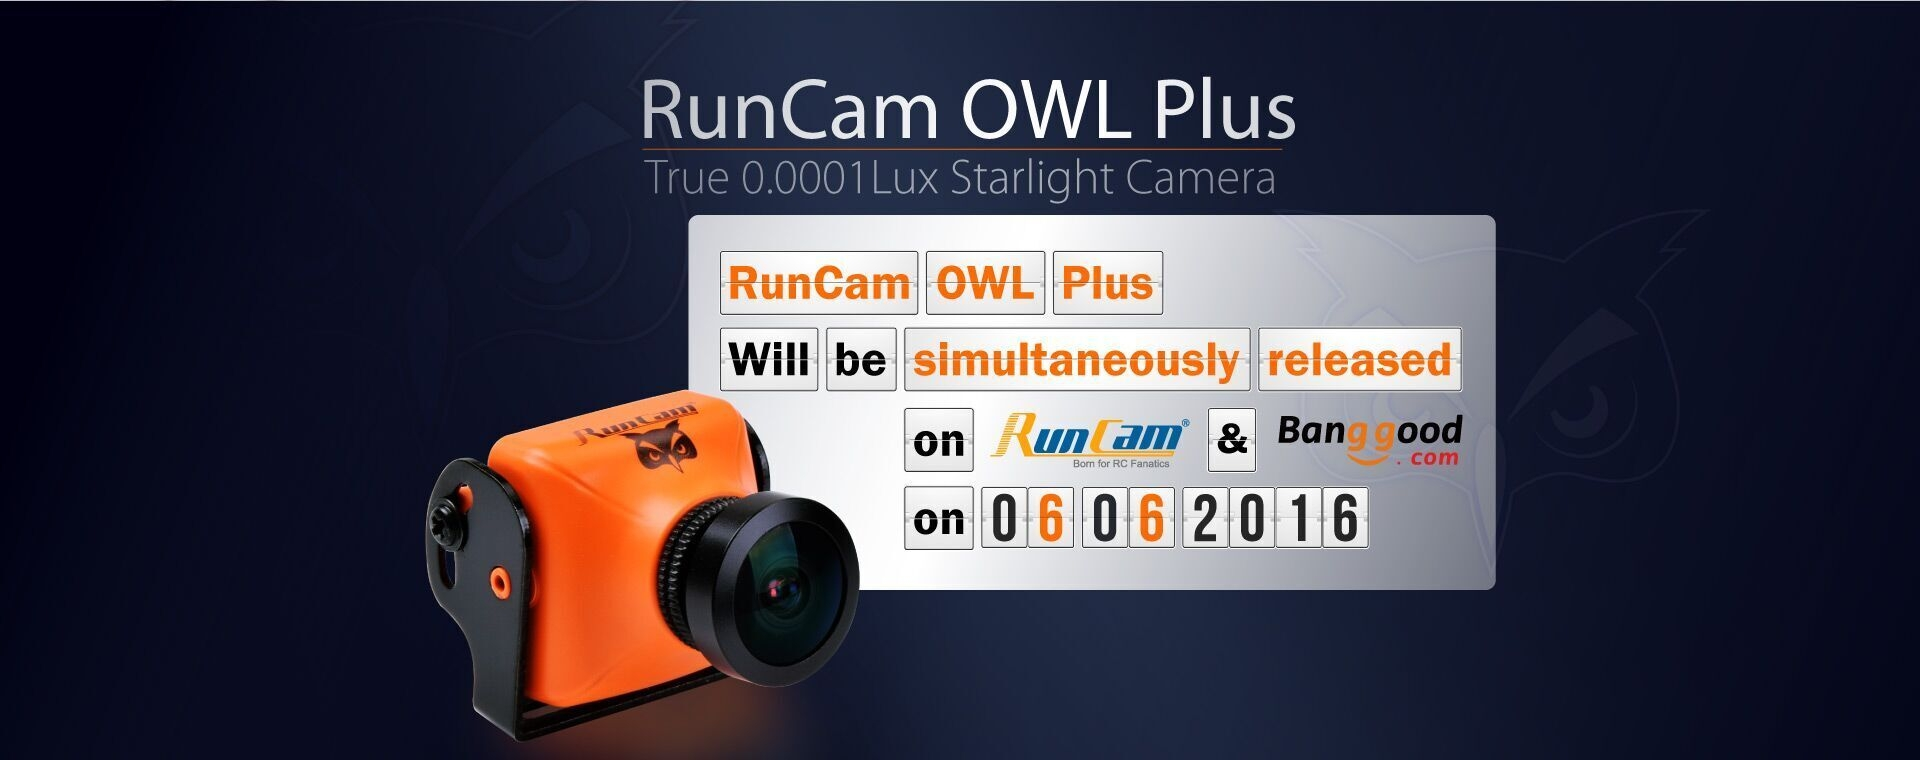 RunCam OWL PLUS 700TVL 0.0001 LUX FPV Camera FOV 150° Wide Angle F2.0 lens IR Blocked 5-22V